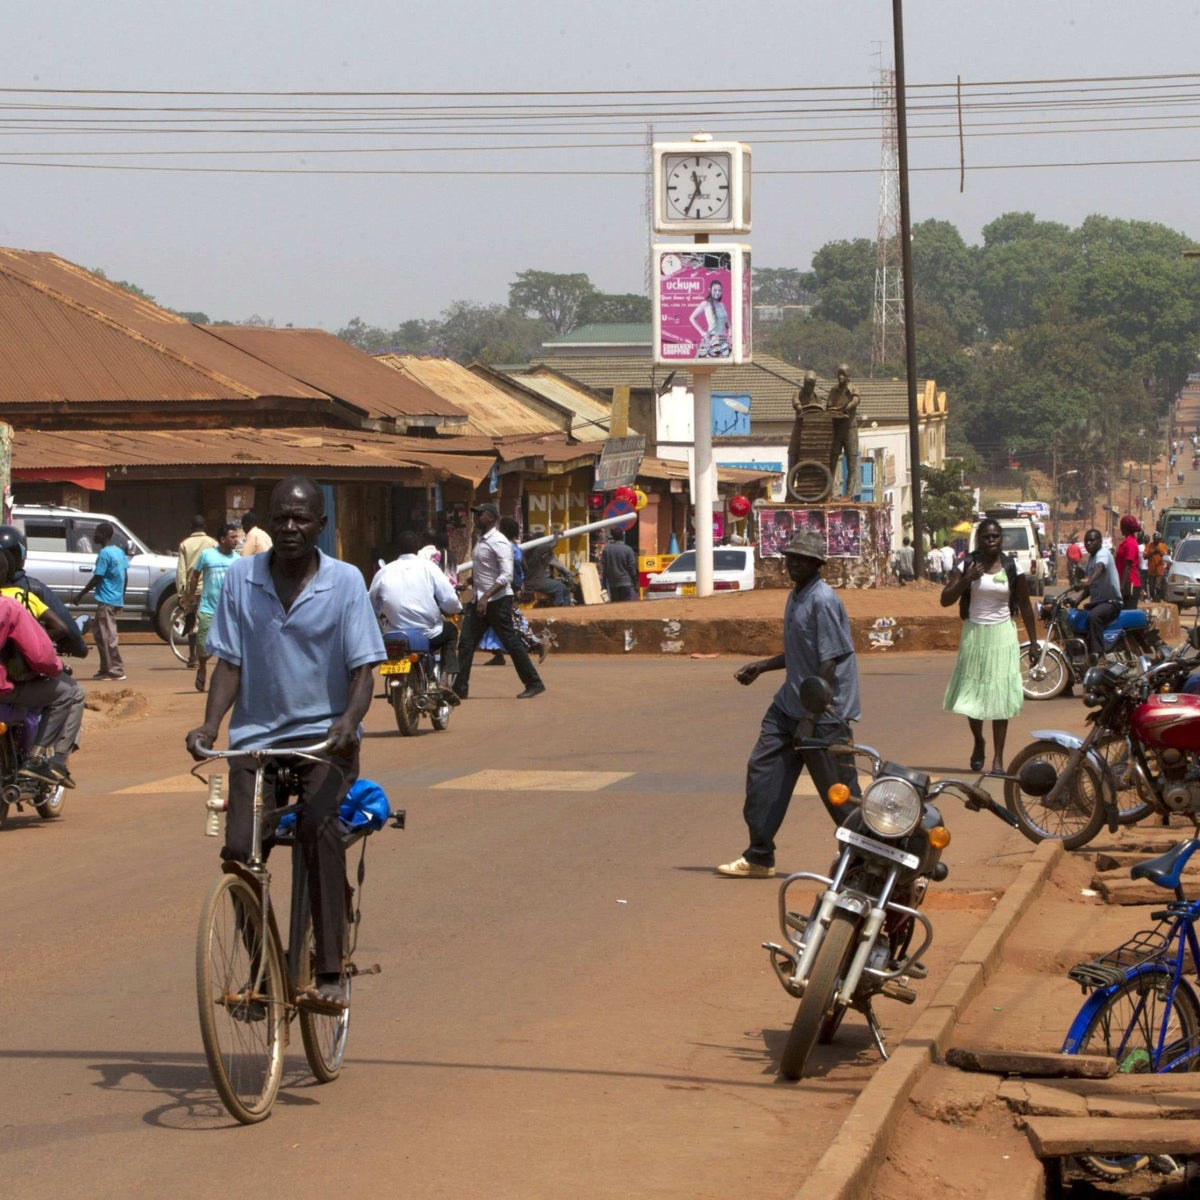 Gulu, a city located north of Uganda's capital, in 2015.